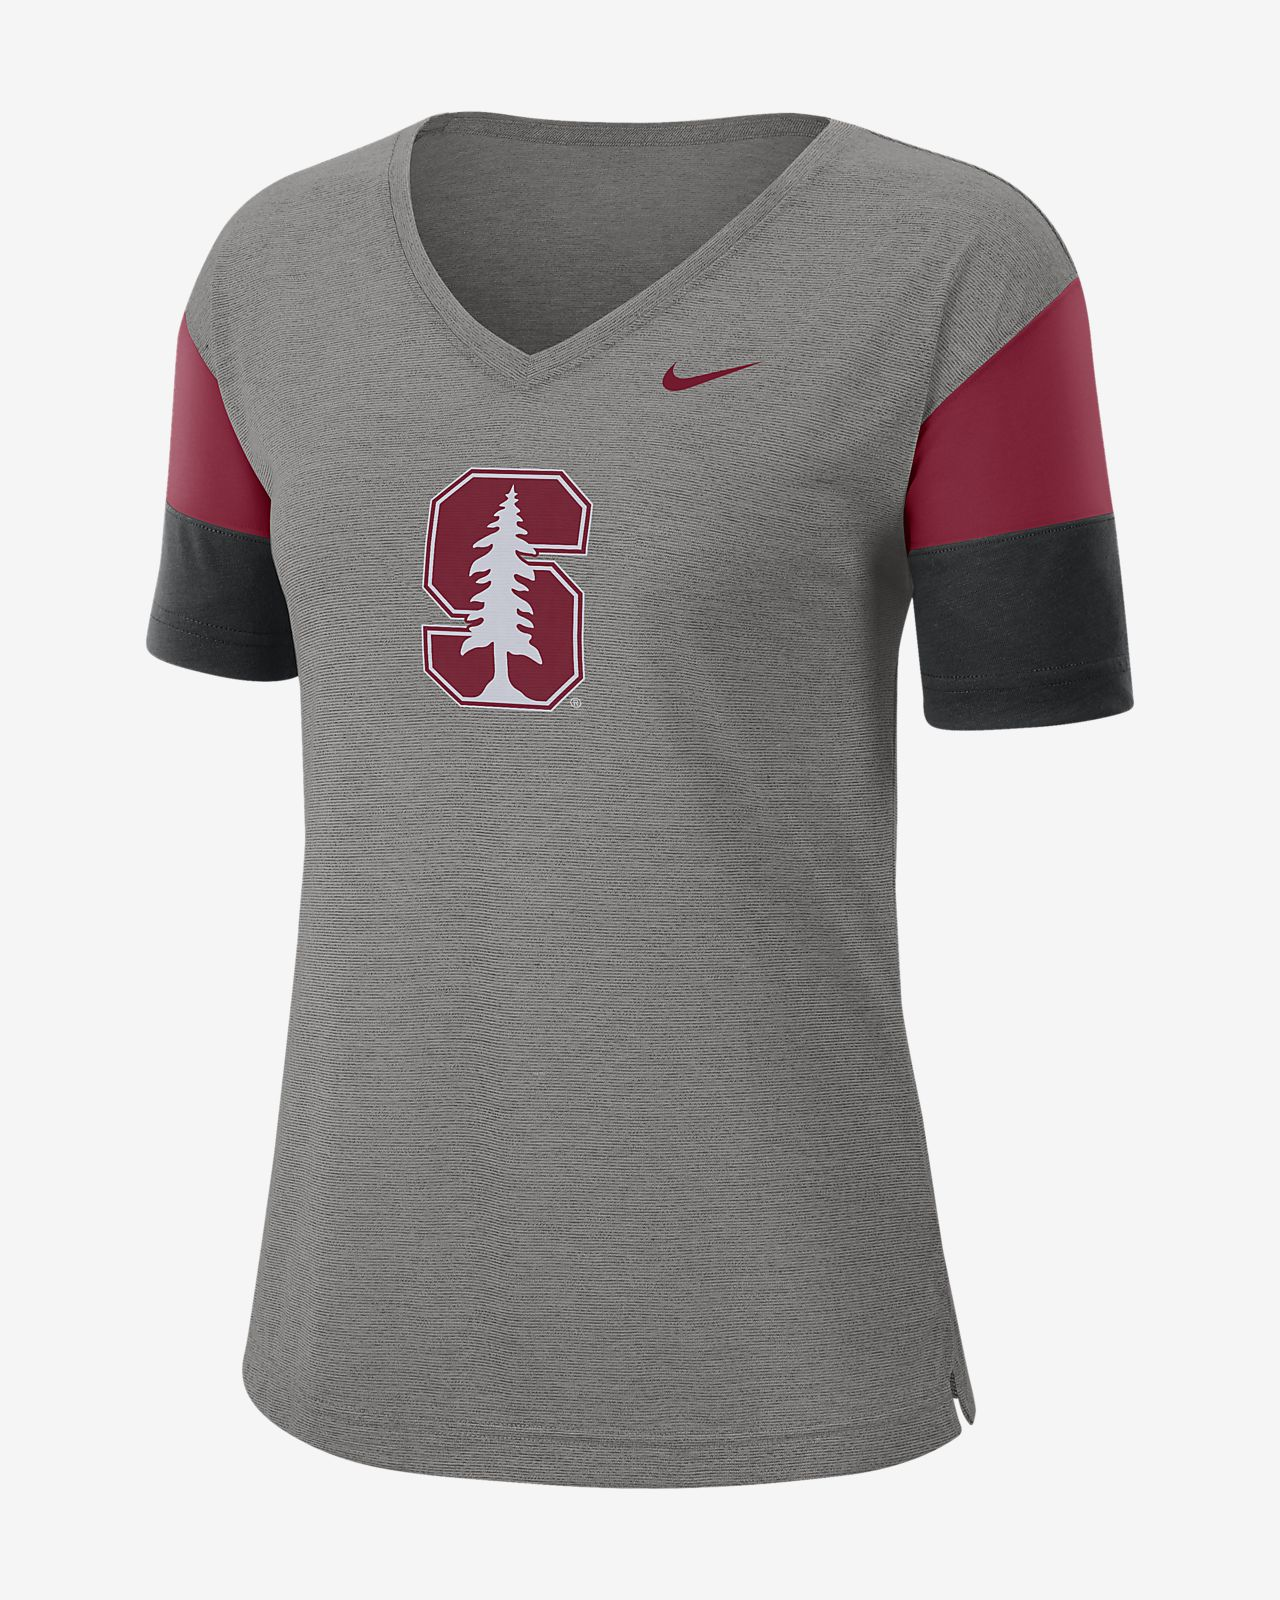 Nike College Breathe (Stanford) Women's Short-Sleeve V-Neck Top